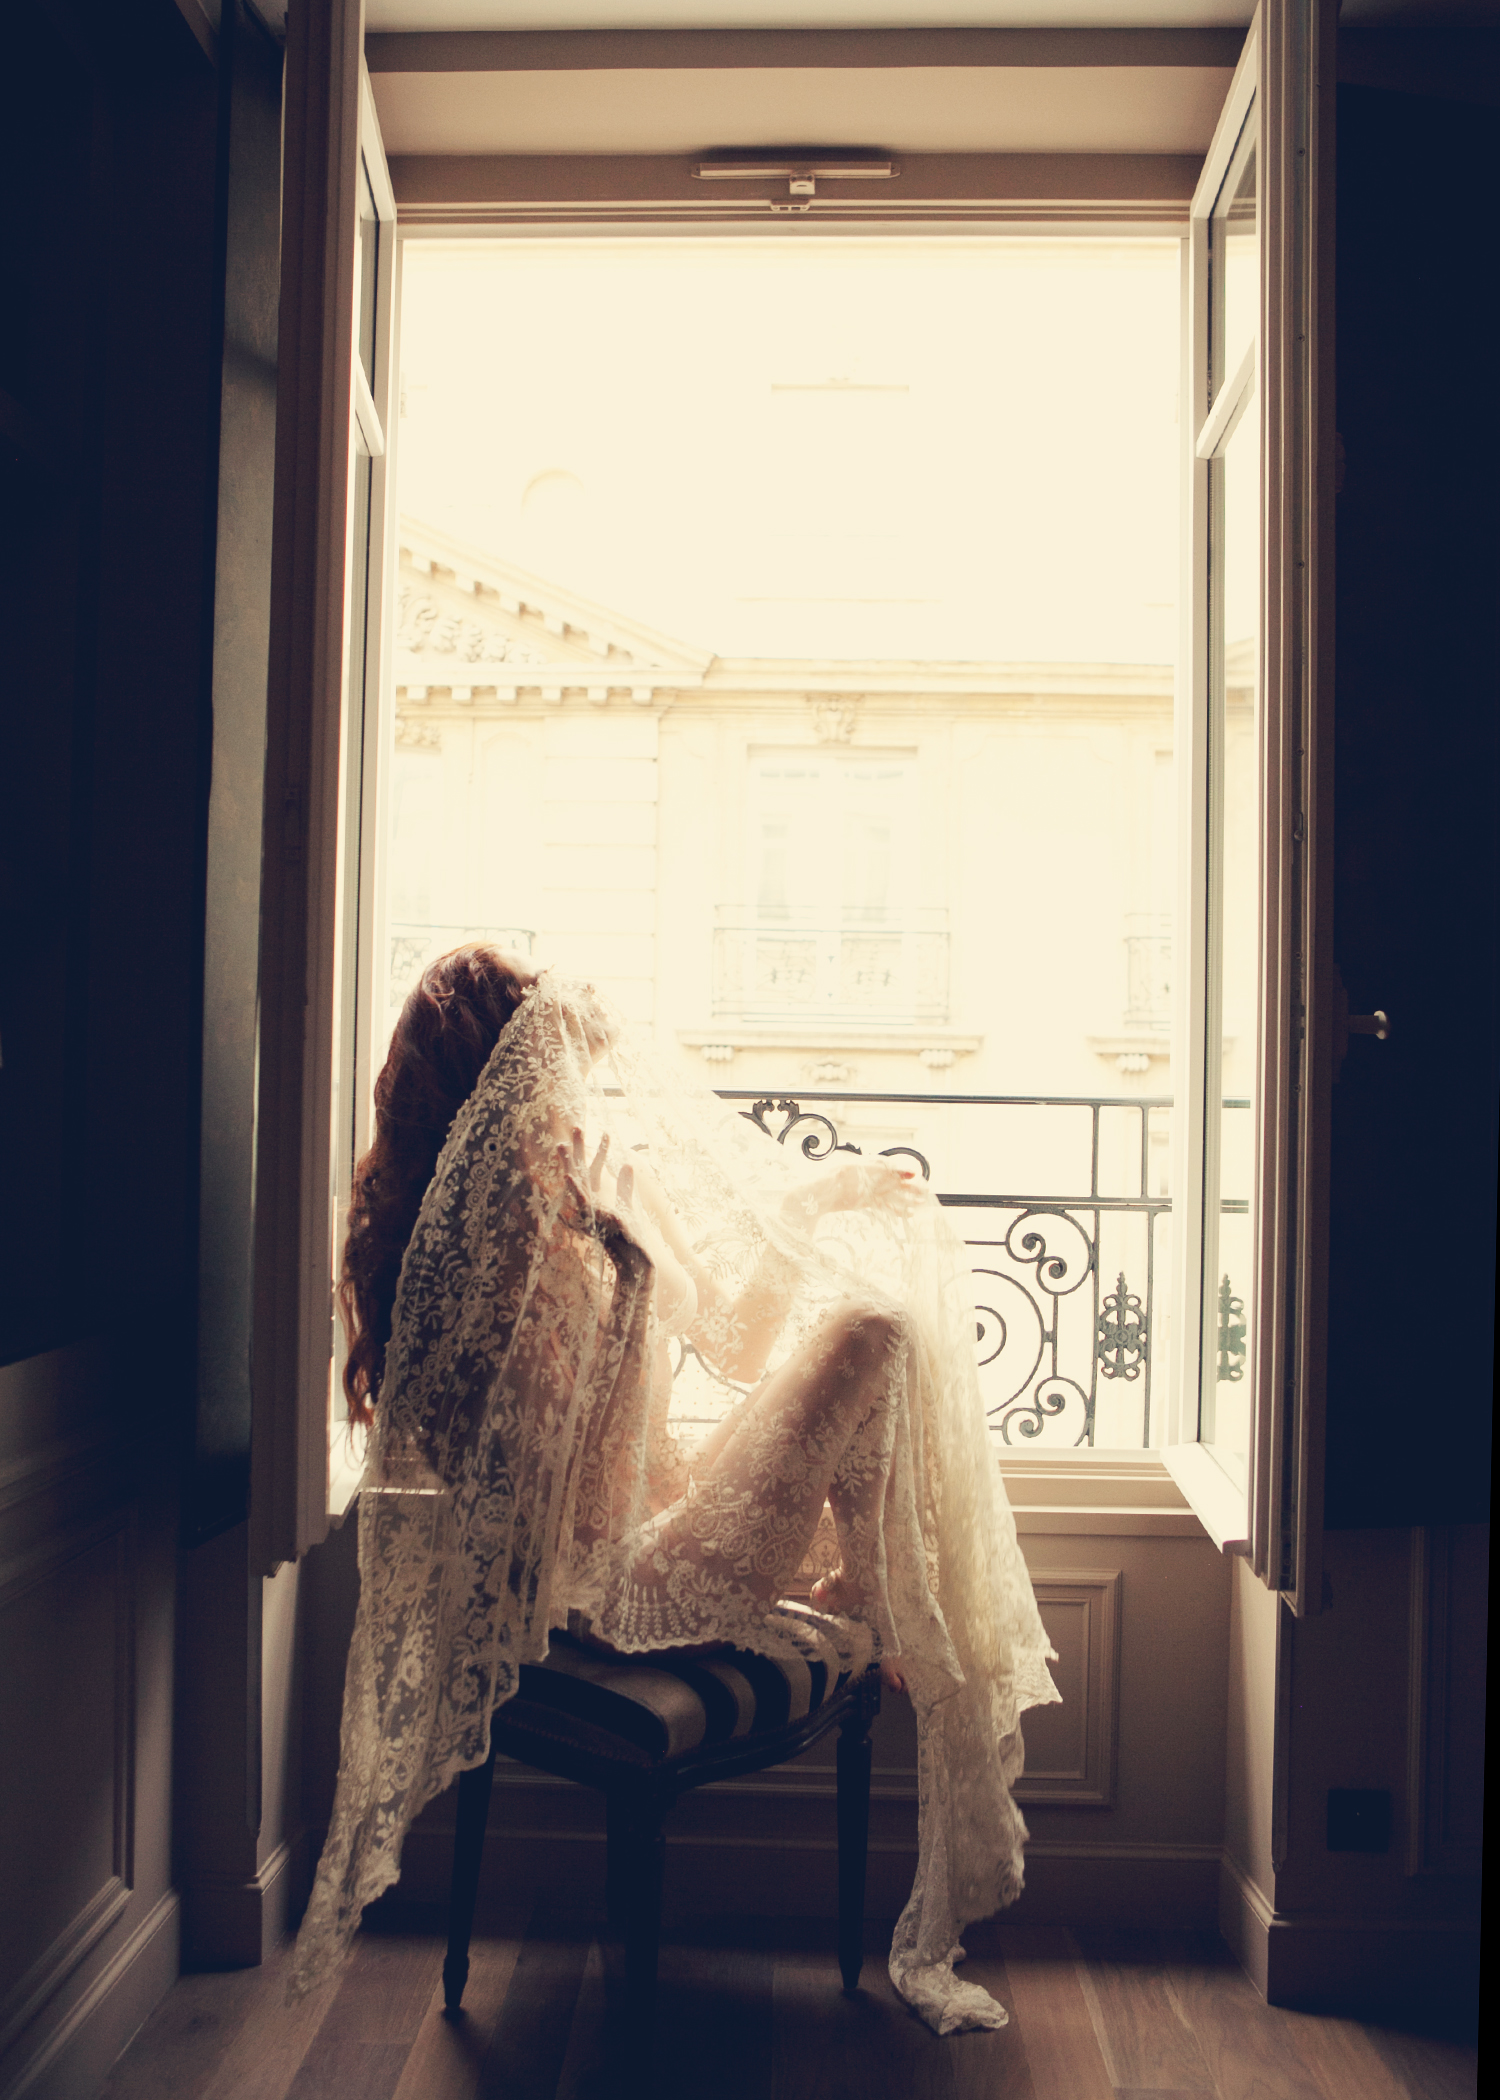 The LANE-Bridal-Editorial-Paris-Karissa-Fanning-Lauren-Ross-vintage-lace-veil.jpg